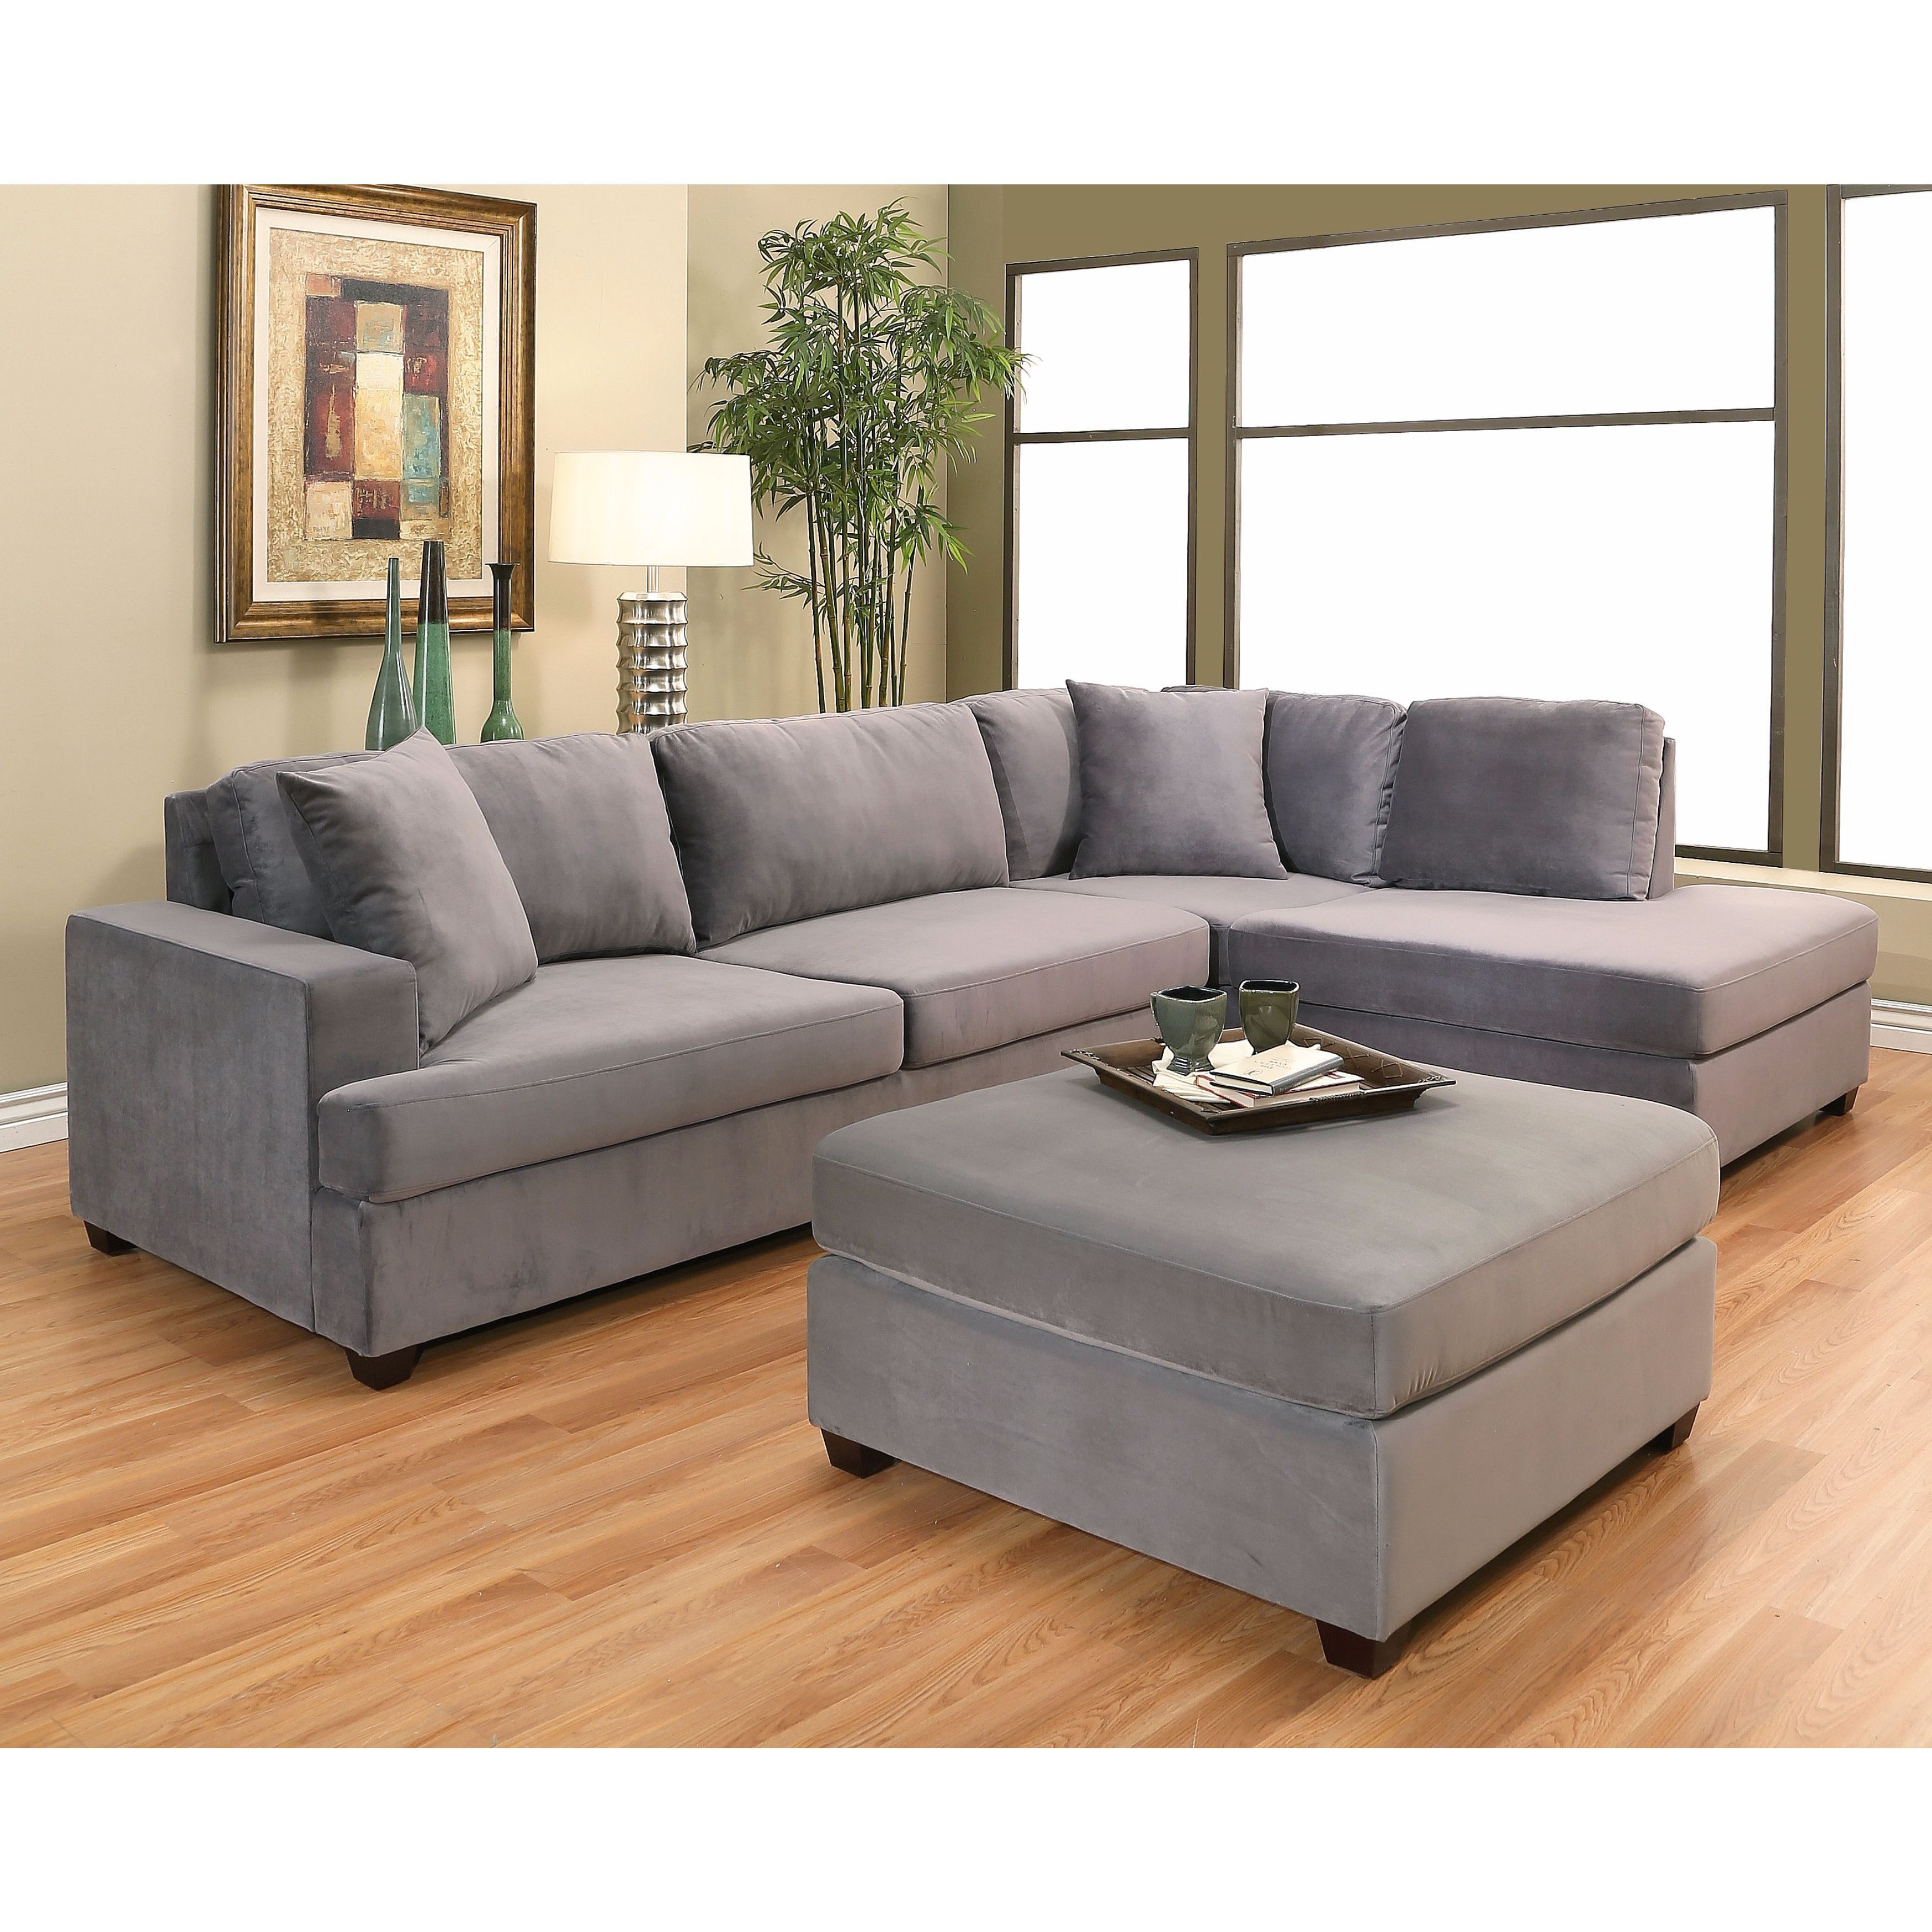 Greytaupefabricfaux suedemicrofibervelvet sectional sofas provide ample seating with sectional sofas this living room furniture style offers